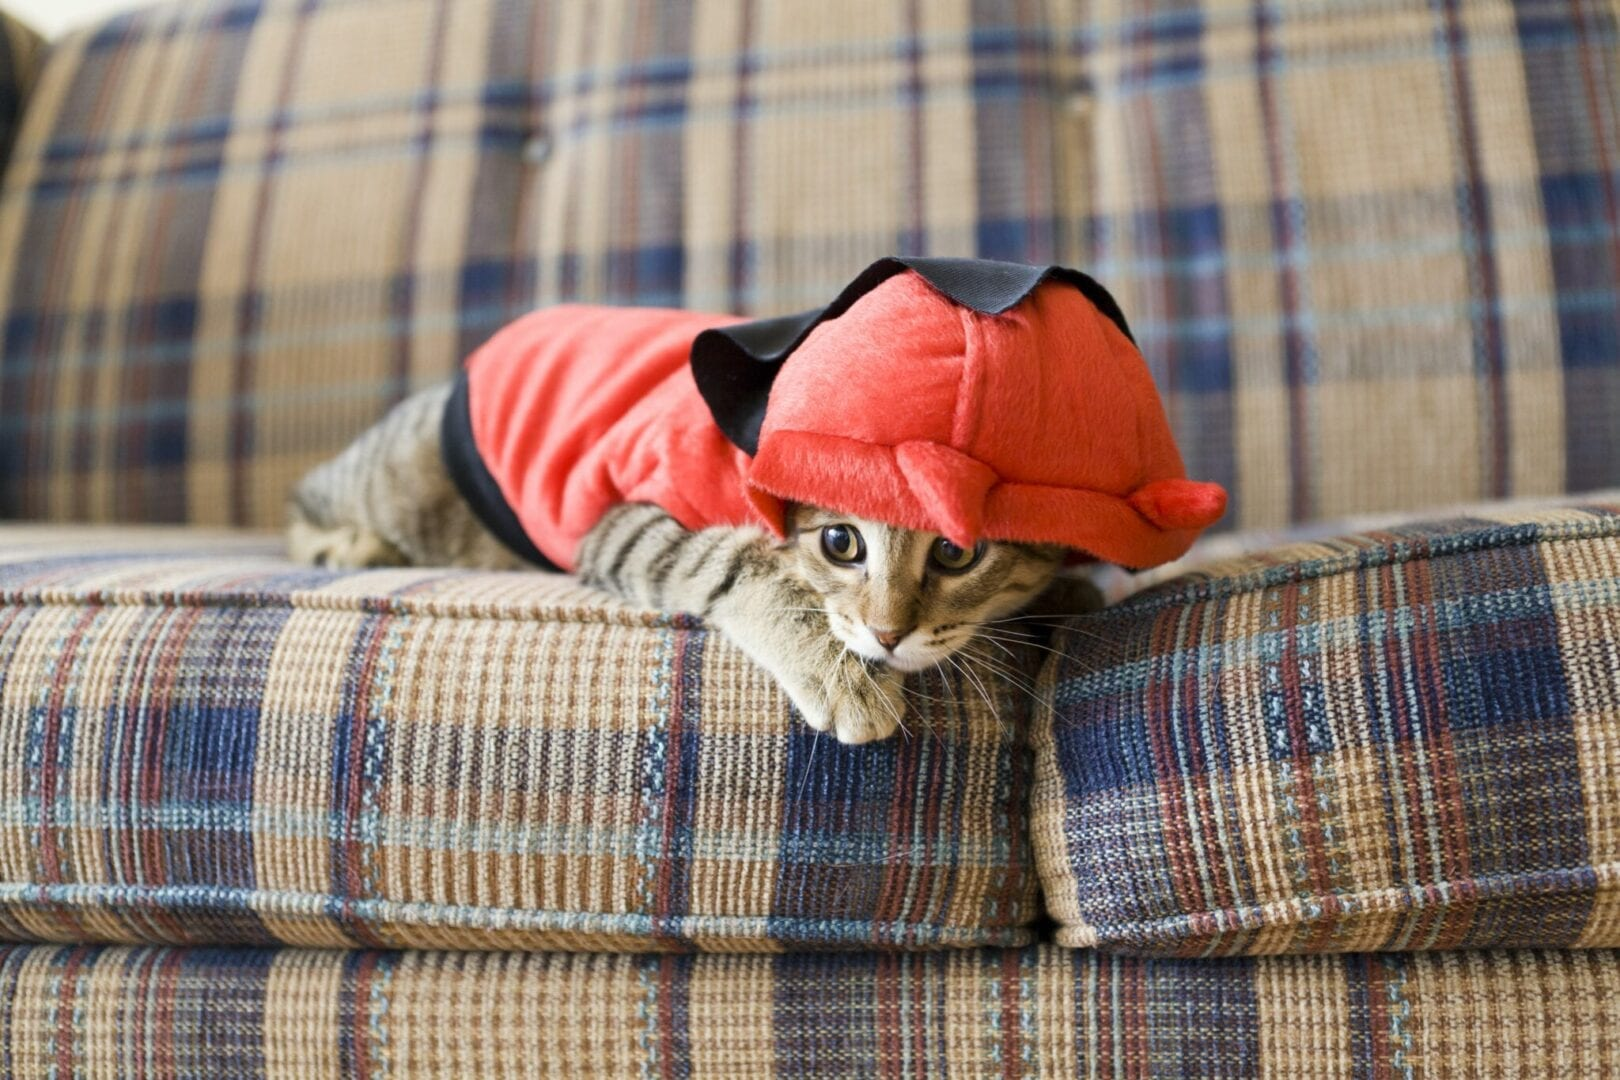 why do cats go limp in clothes?